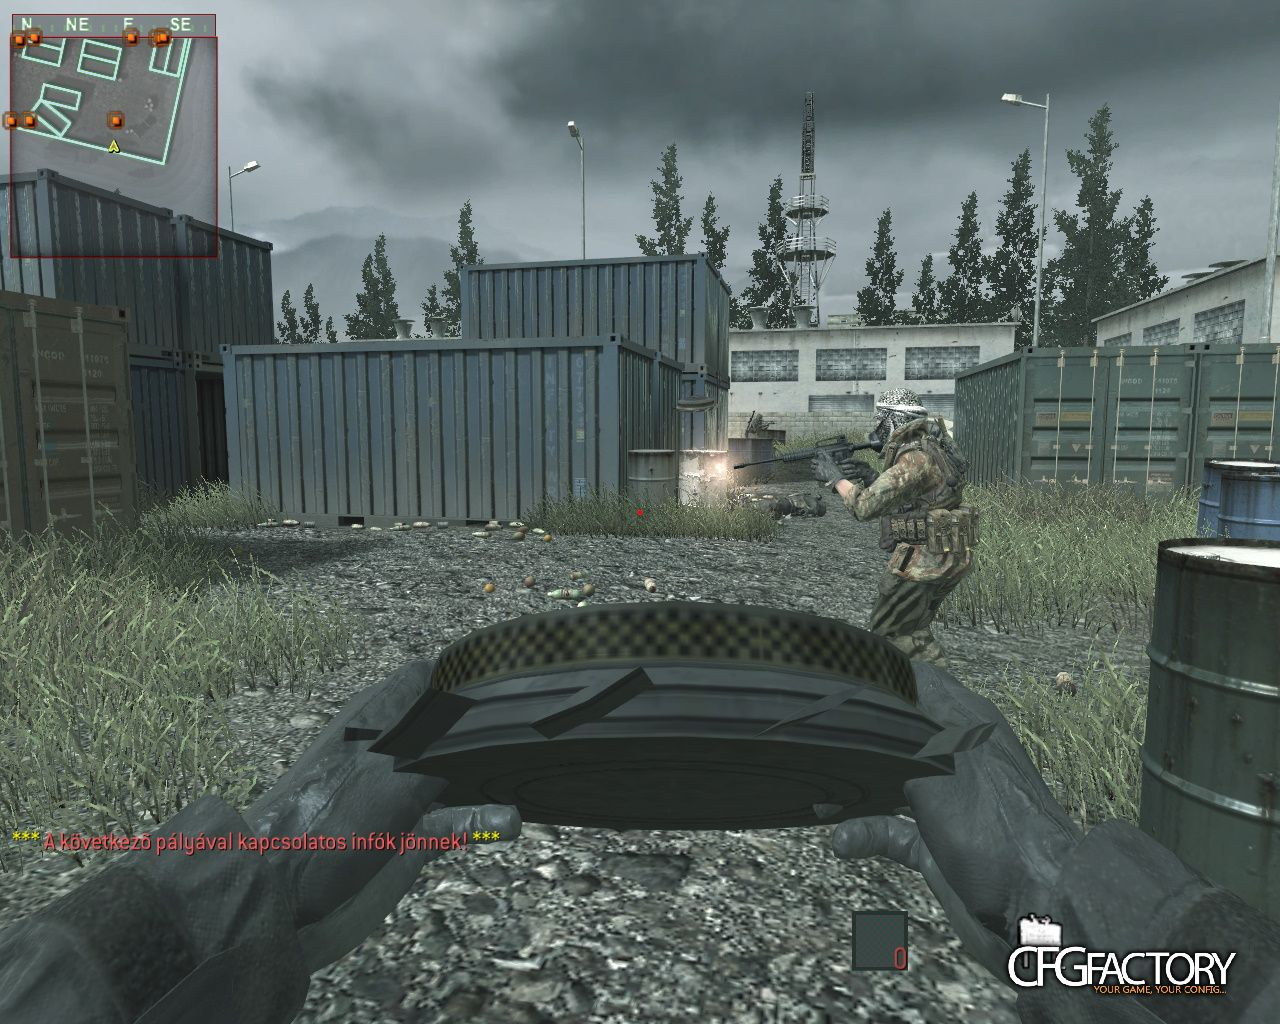 cod4, other / misc, bouncing betty claymore, n/a